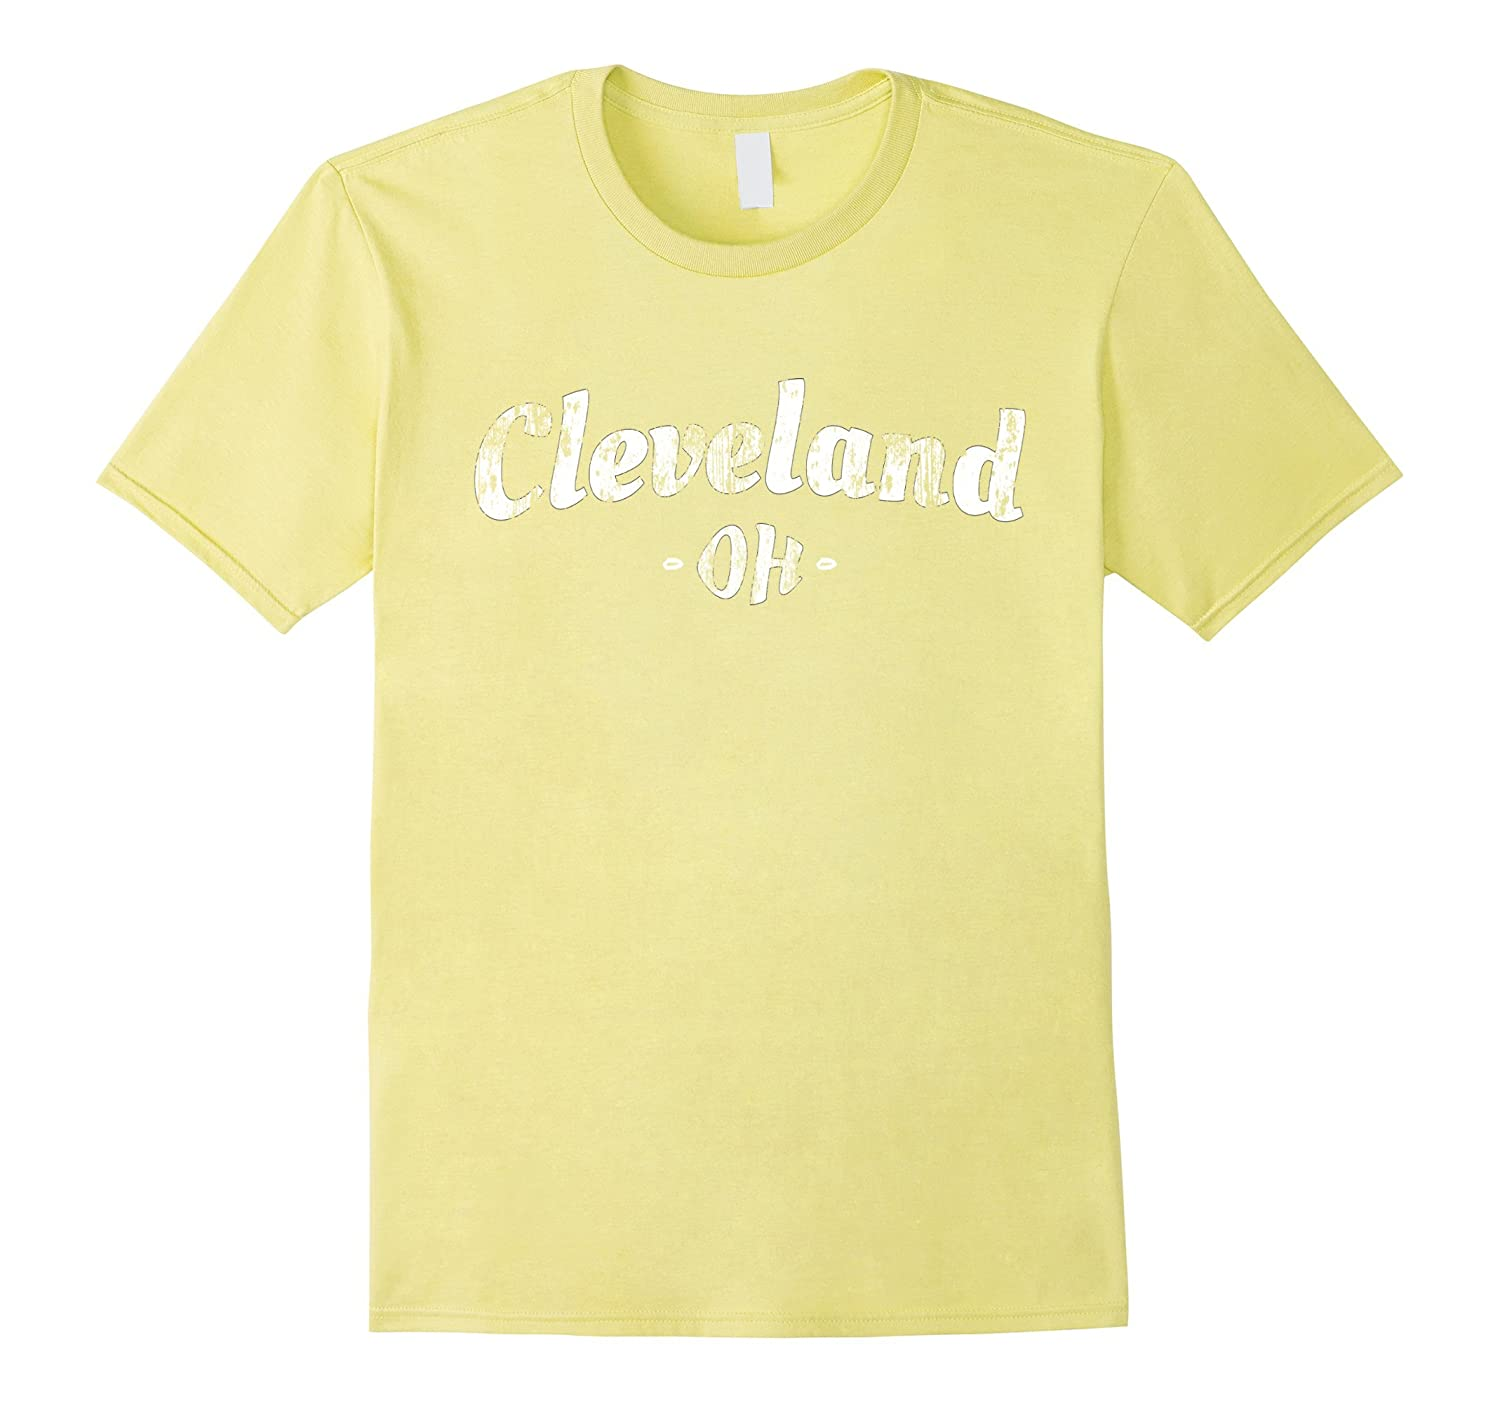 Cleveland T-Shirt Ohio Distressed Retro Style Clothing OH T